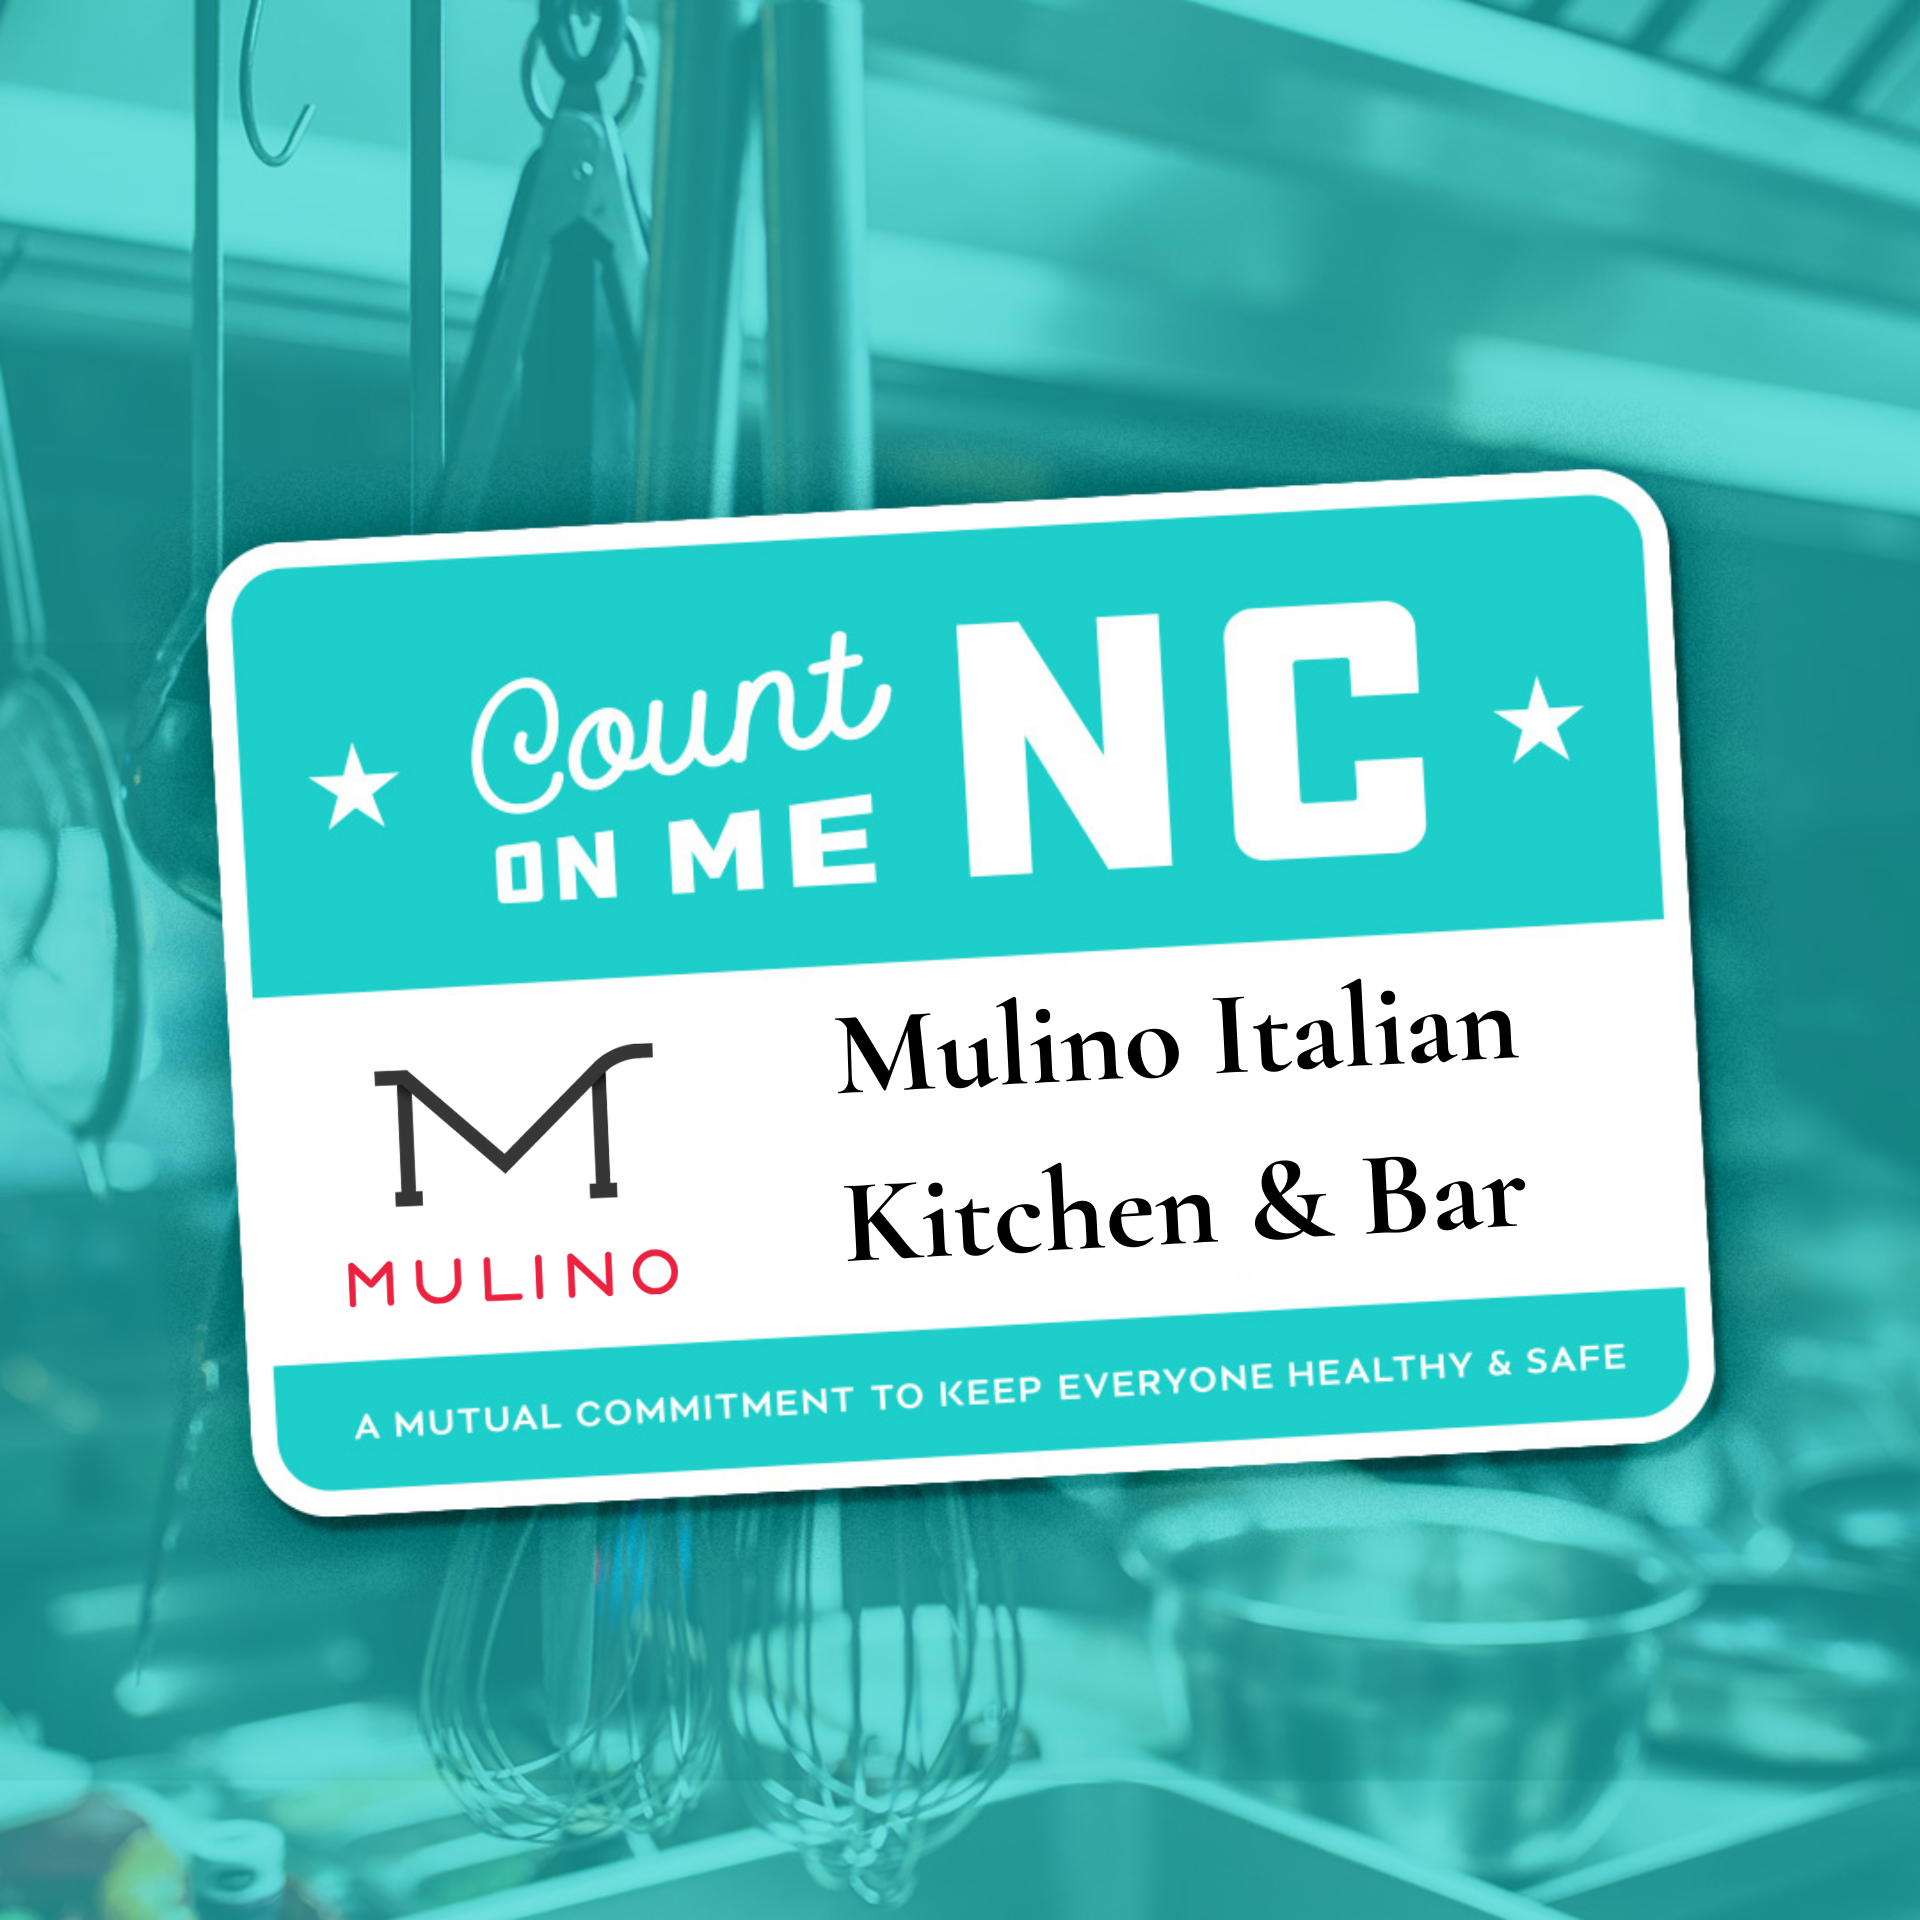 Mulino Count On Me NC